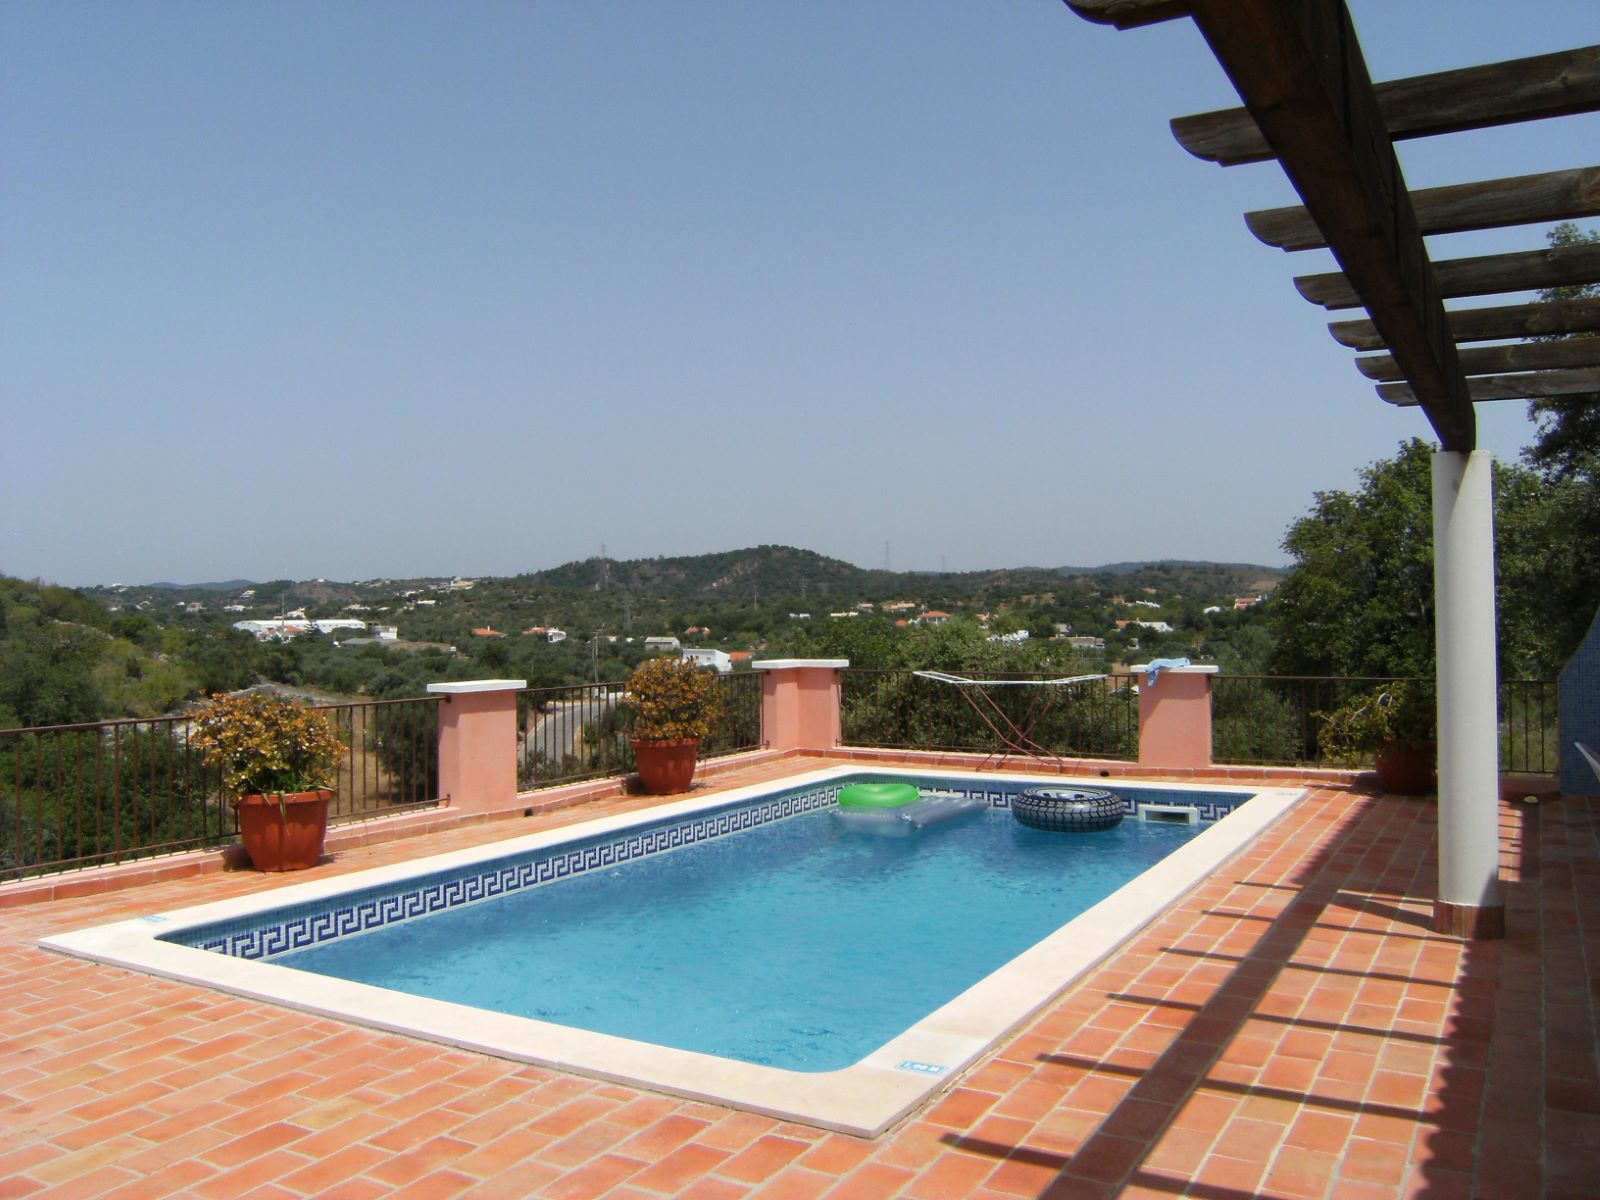 Villa with 6 bedrooms for sale in São Brás de Alportel